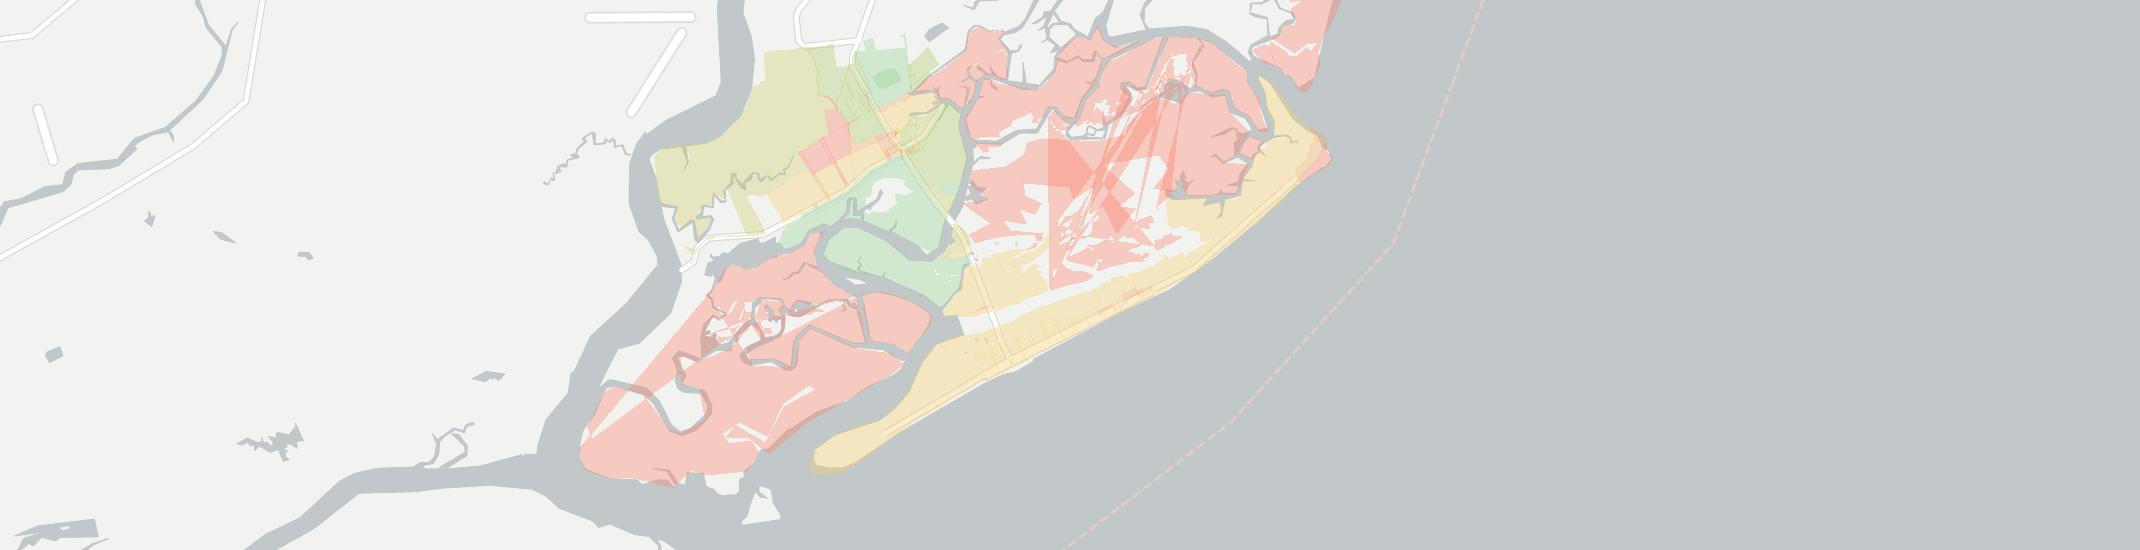 Folly Beach South Carolina Map.Folly Beach Has 10 Internet Service Providers Up To 150 Mbps